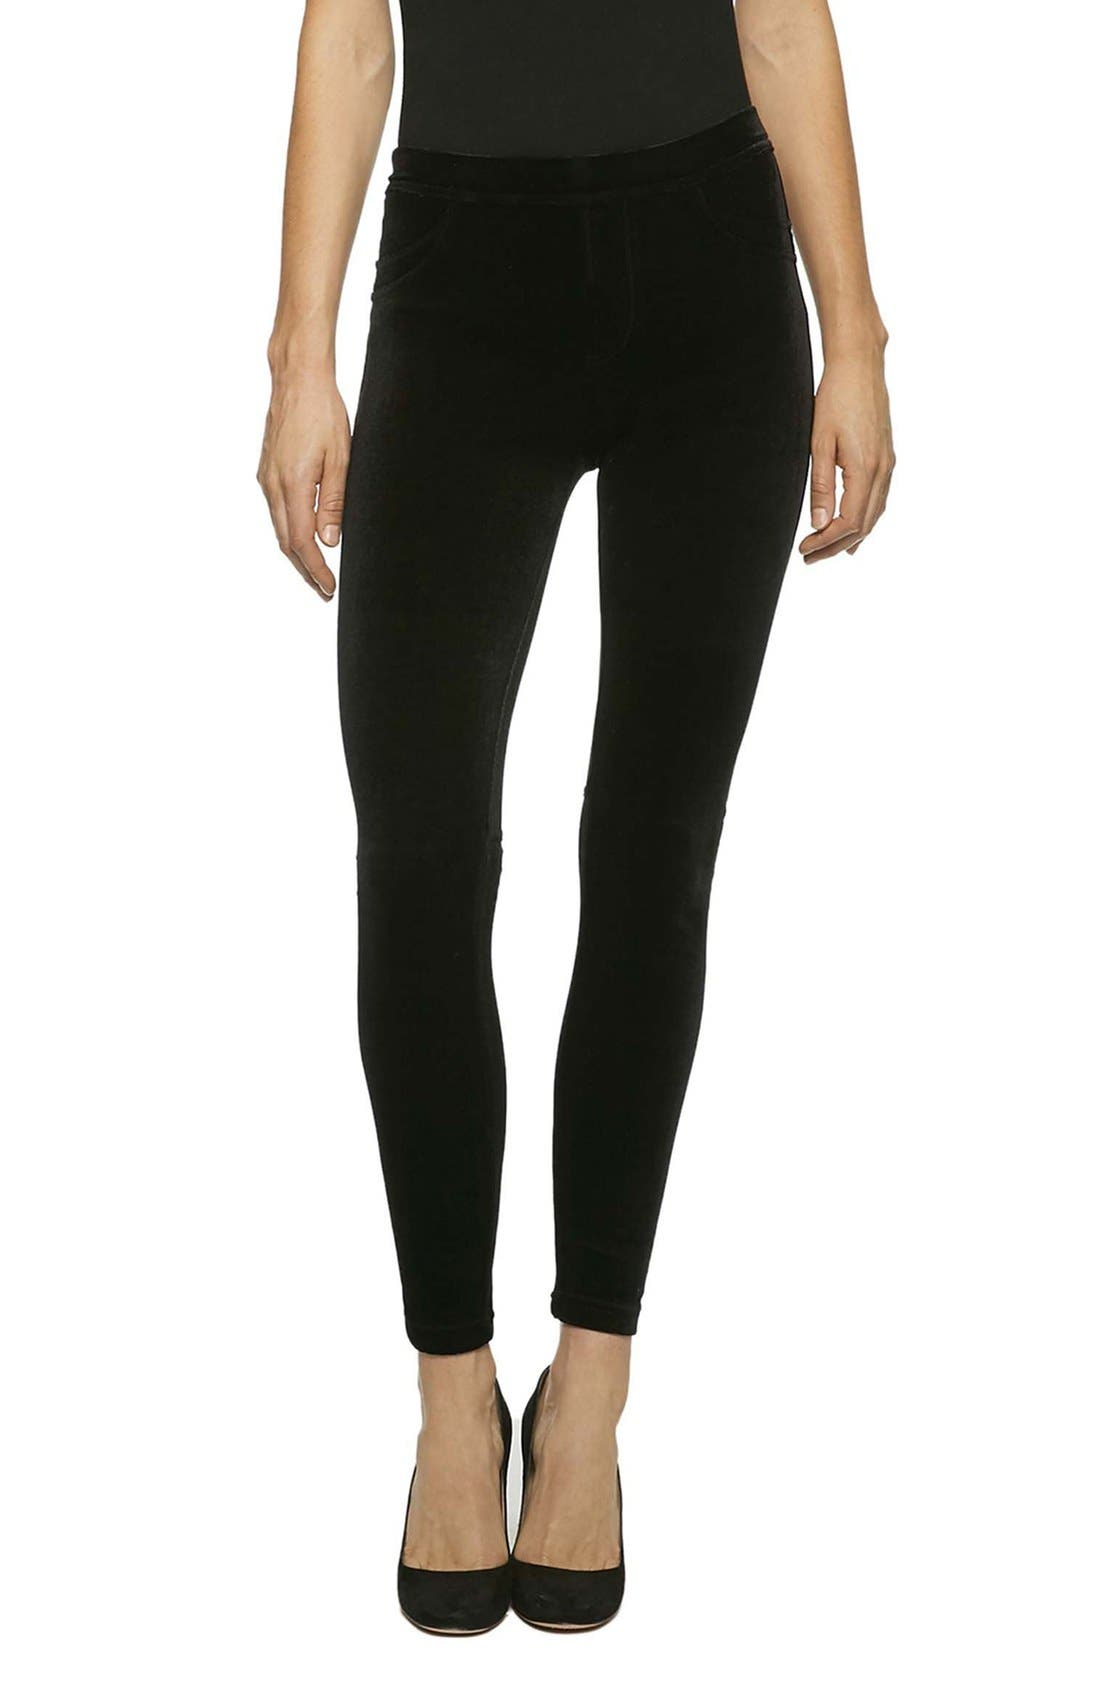 Grease Velvet Leggings,                             Main thumbnail 1, color,                             Solid Black Velvet